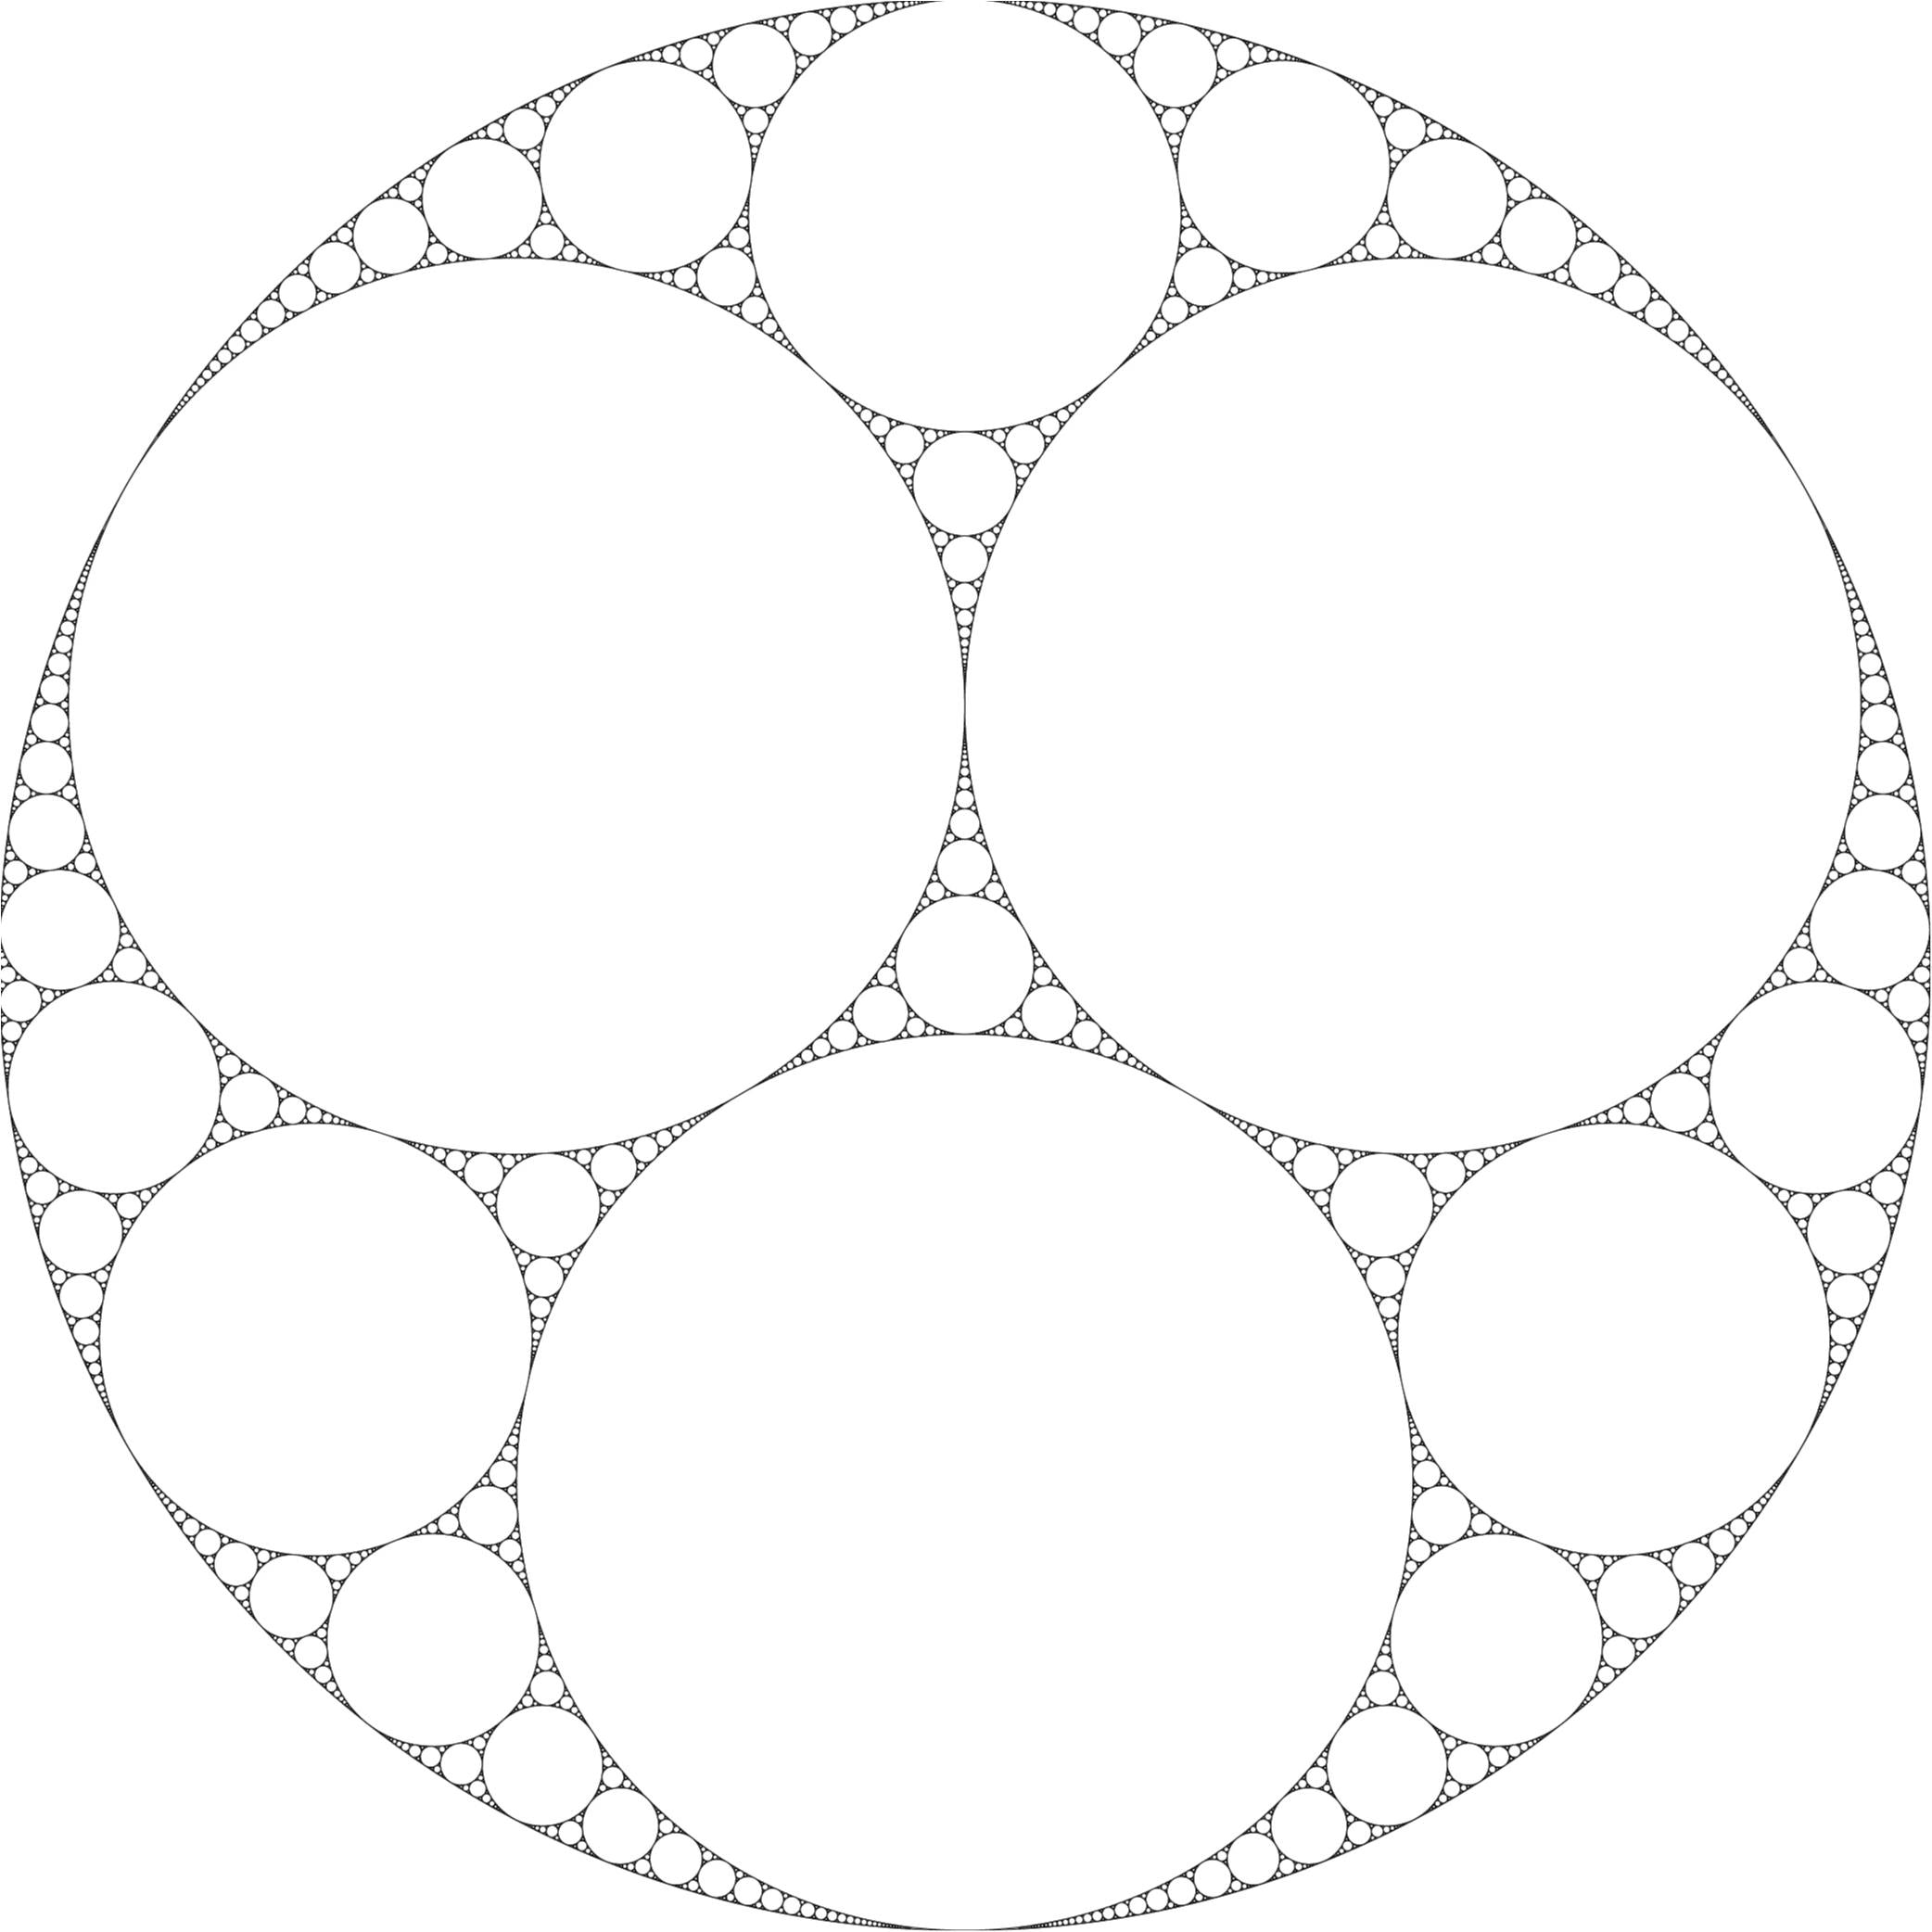 We derive an estimate of the fractal dimension of the Apollonian gasket in d dimensions.